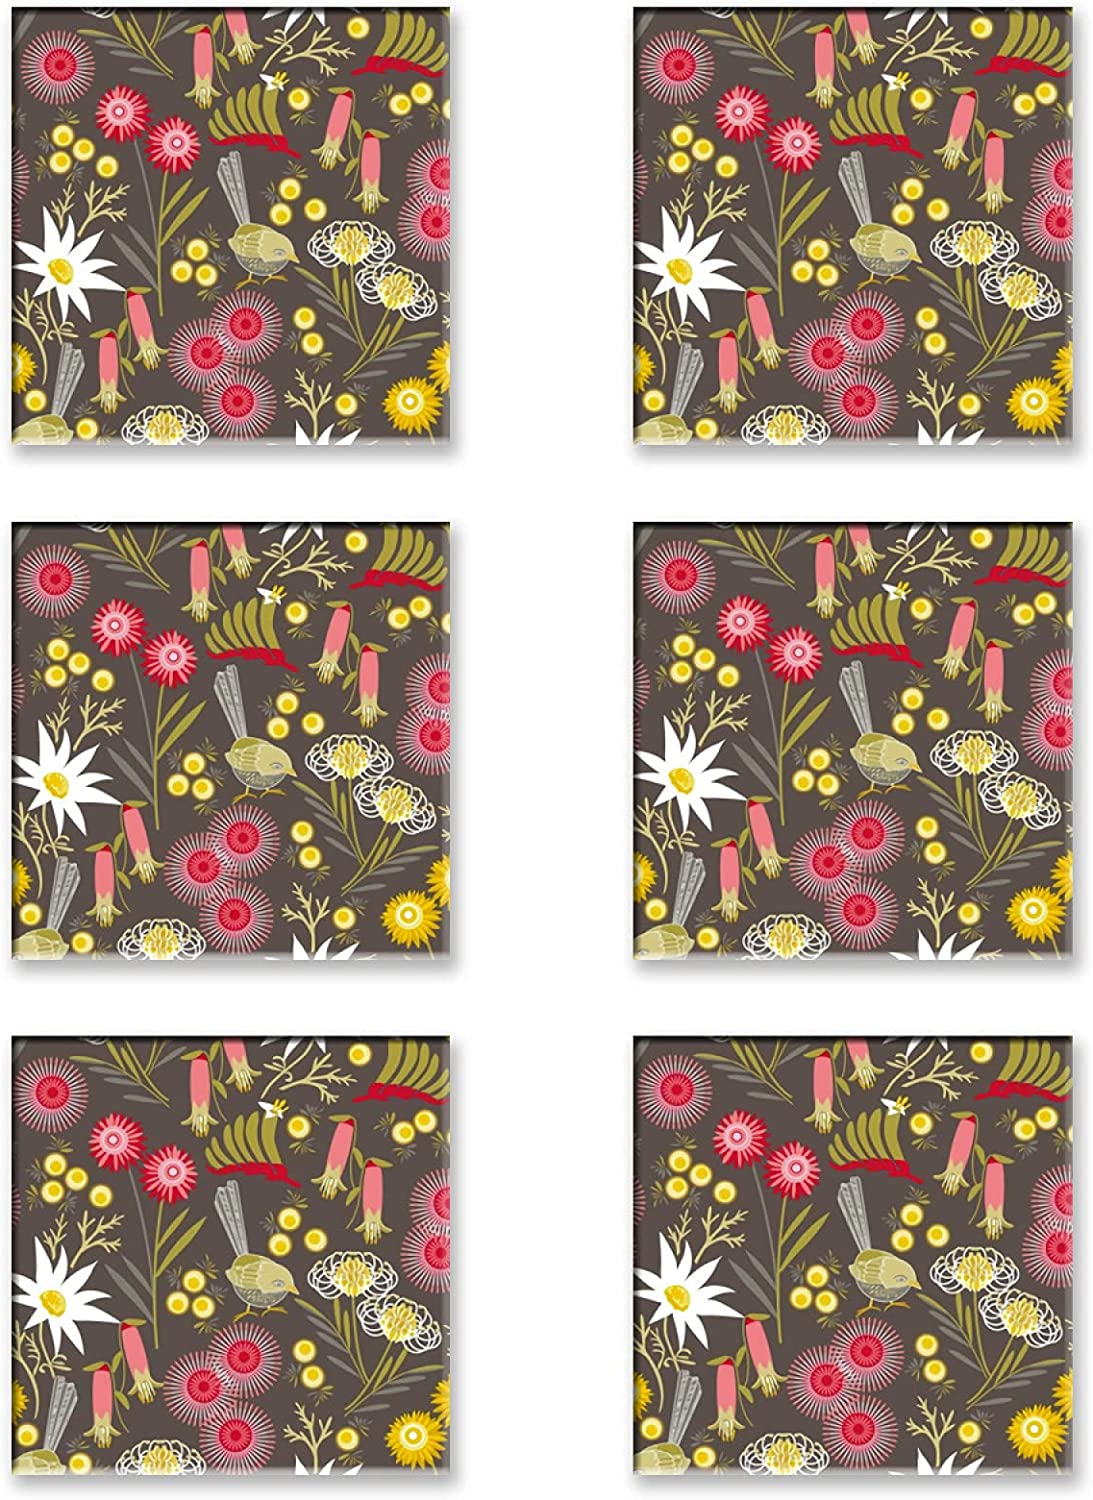 6 Pieces Square Drink Outstanding Coaster Moisture Absorbing Shipping included Heat-Res 4inch